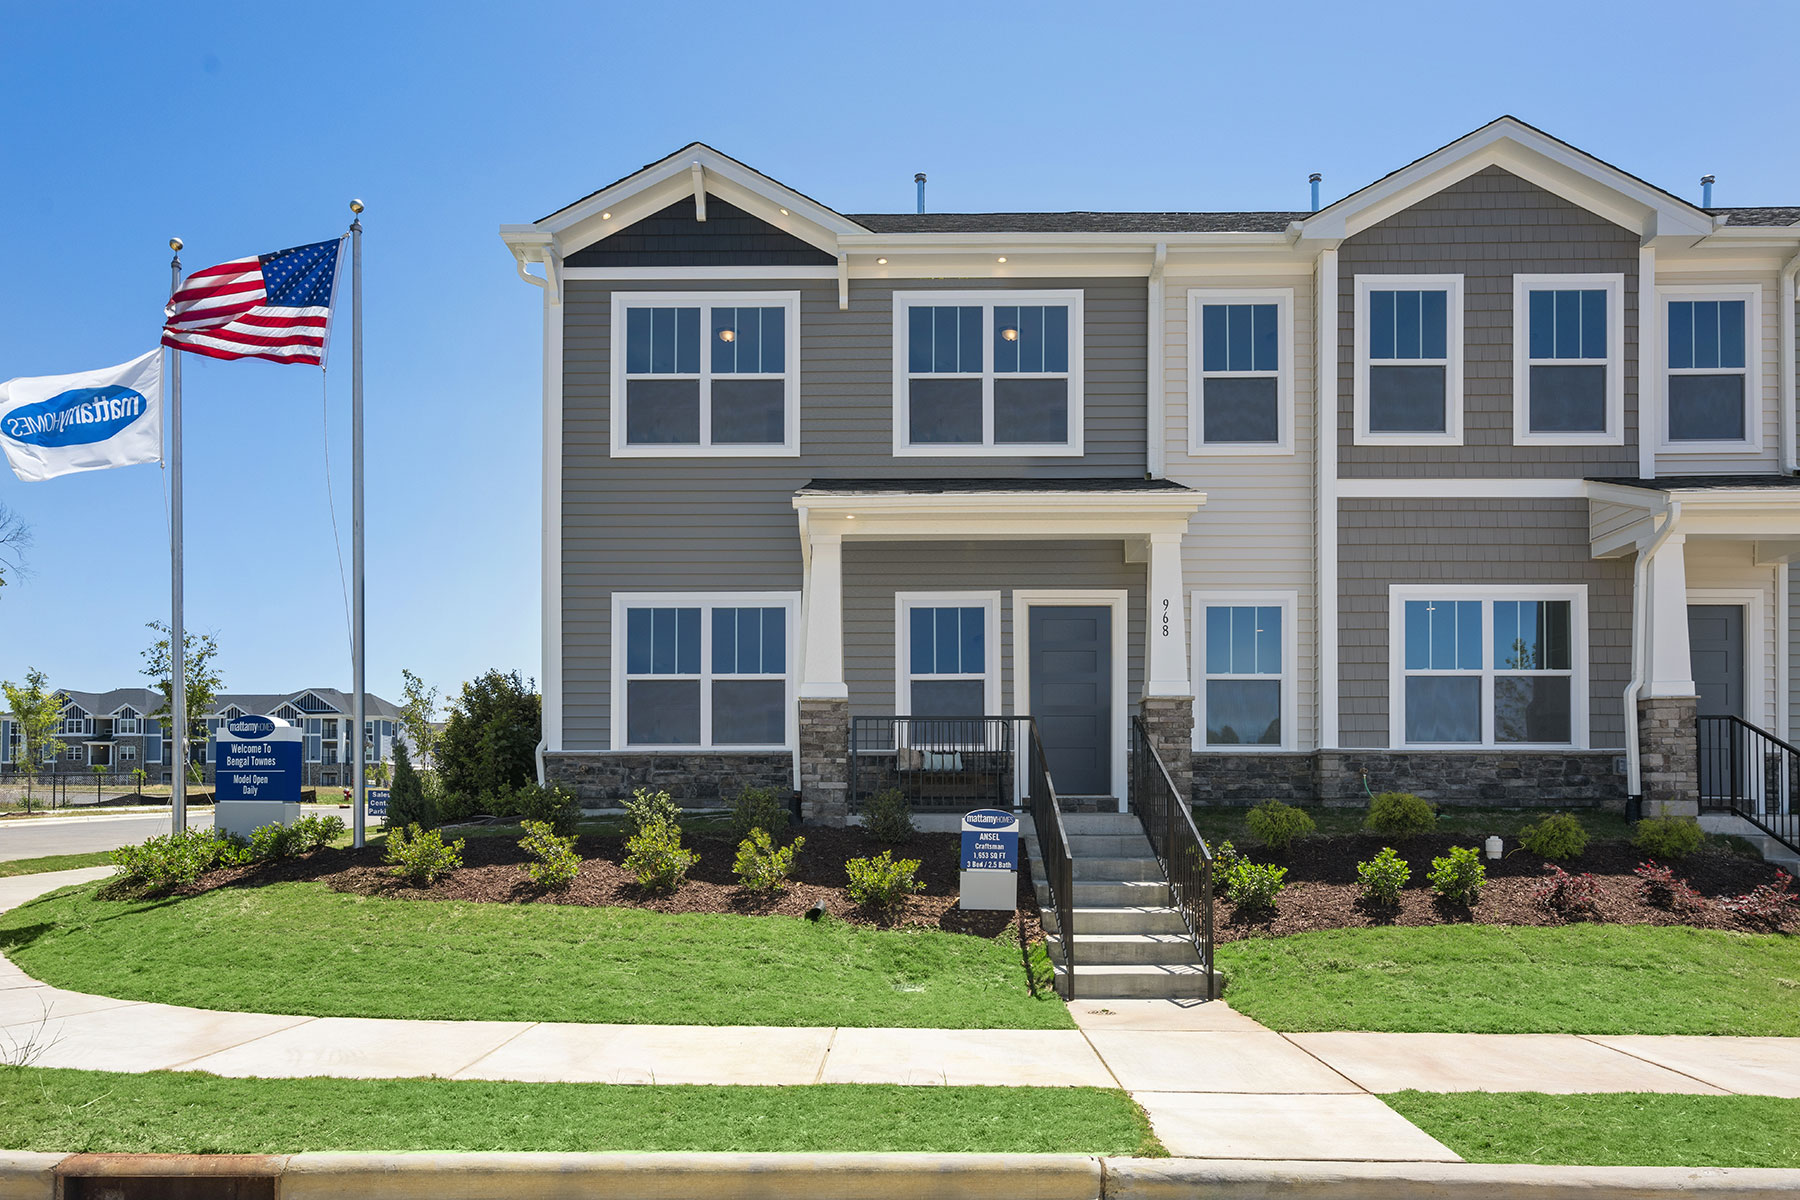 Ansel Plan rdu_the-ansel_btc_exterior2 at Bengal Townes in Fuquay-Varina North Carolina by Mattamy Homes